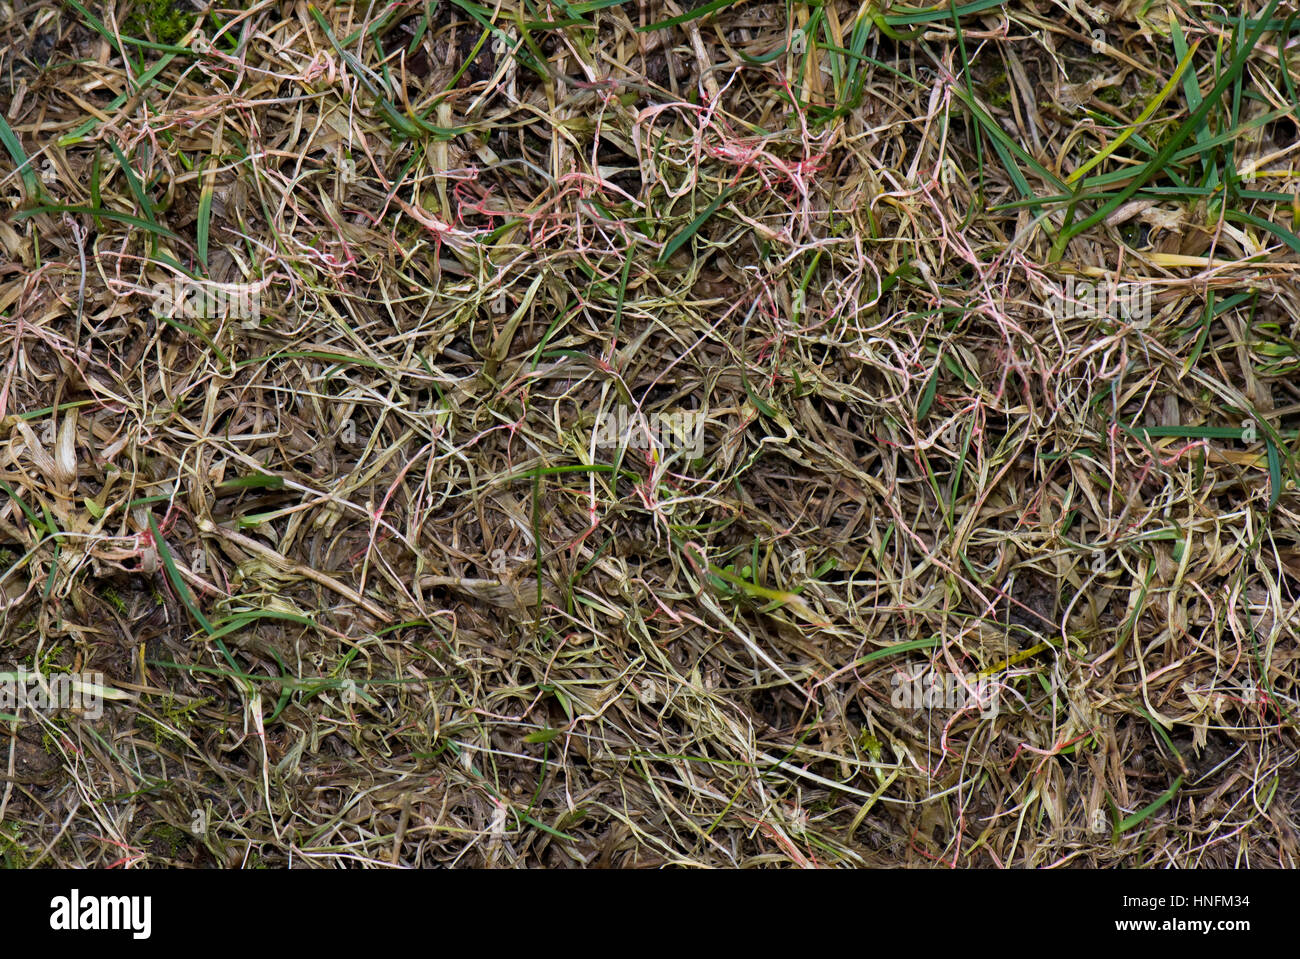 Red thread, Laetisaria fuciformis, damage and stromata from the disease on lawn grass - Stock Image